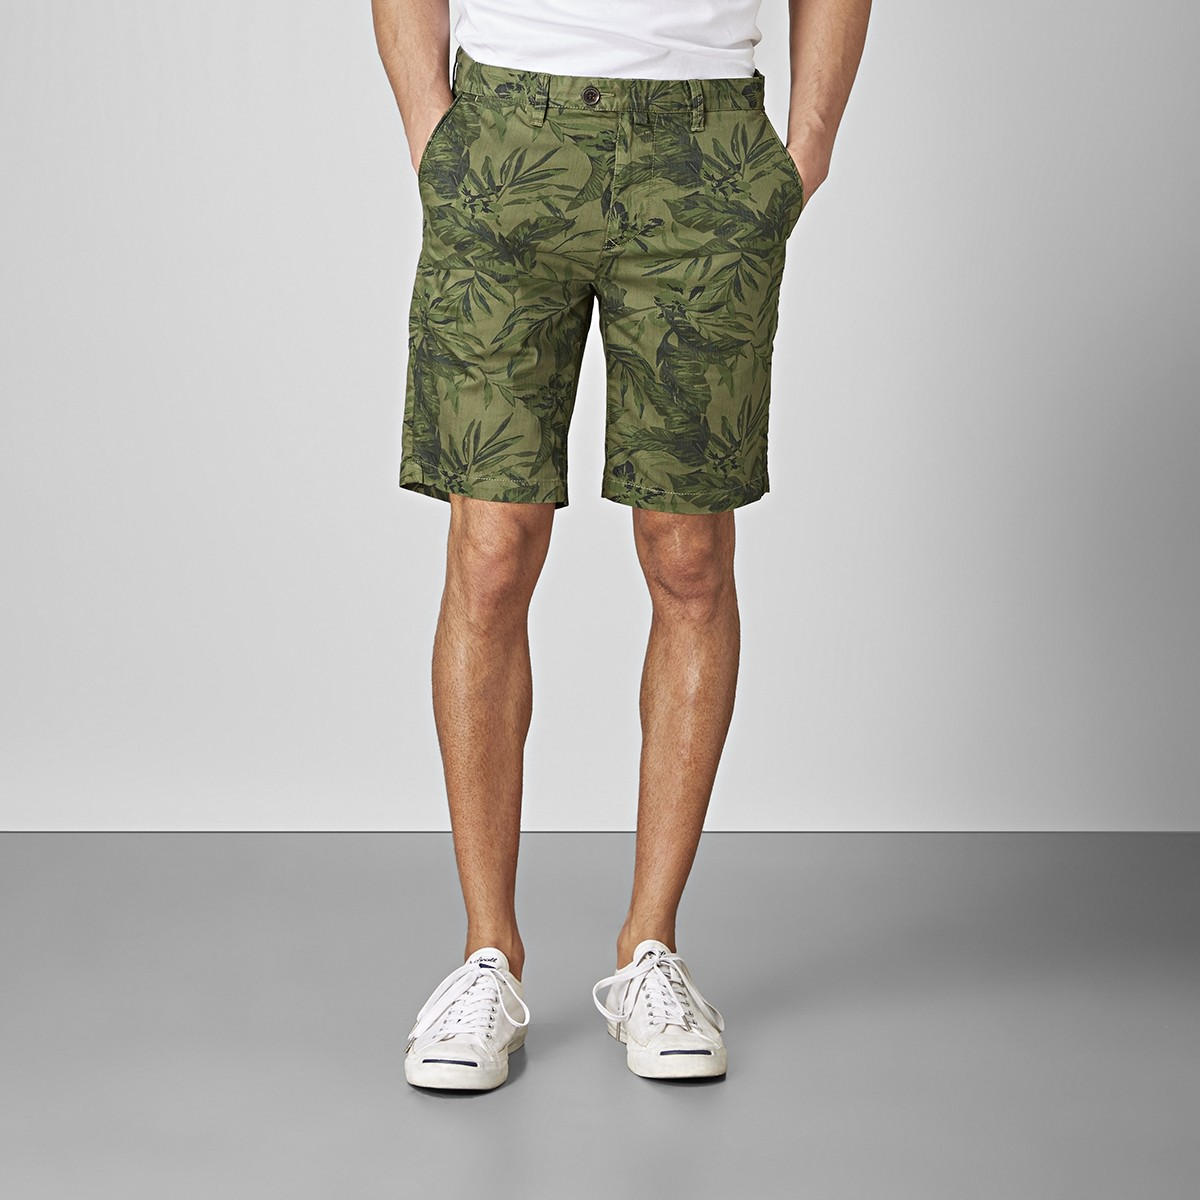 Bowery Chinos Shorts Militär | East West | Brothers.se